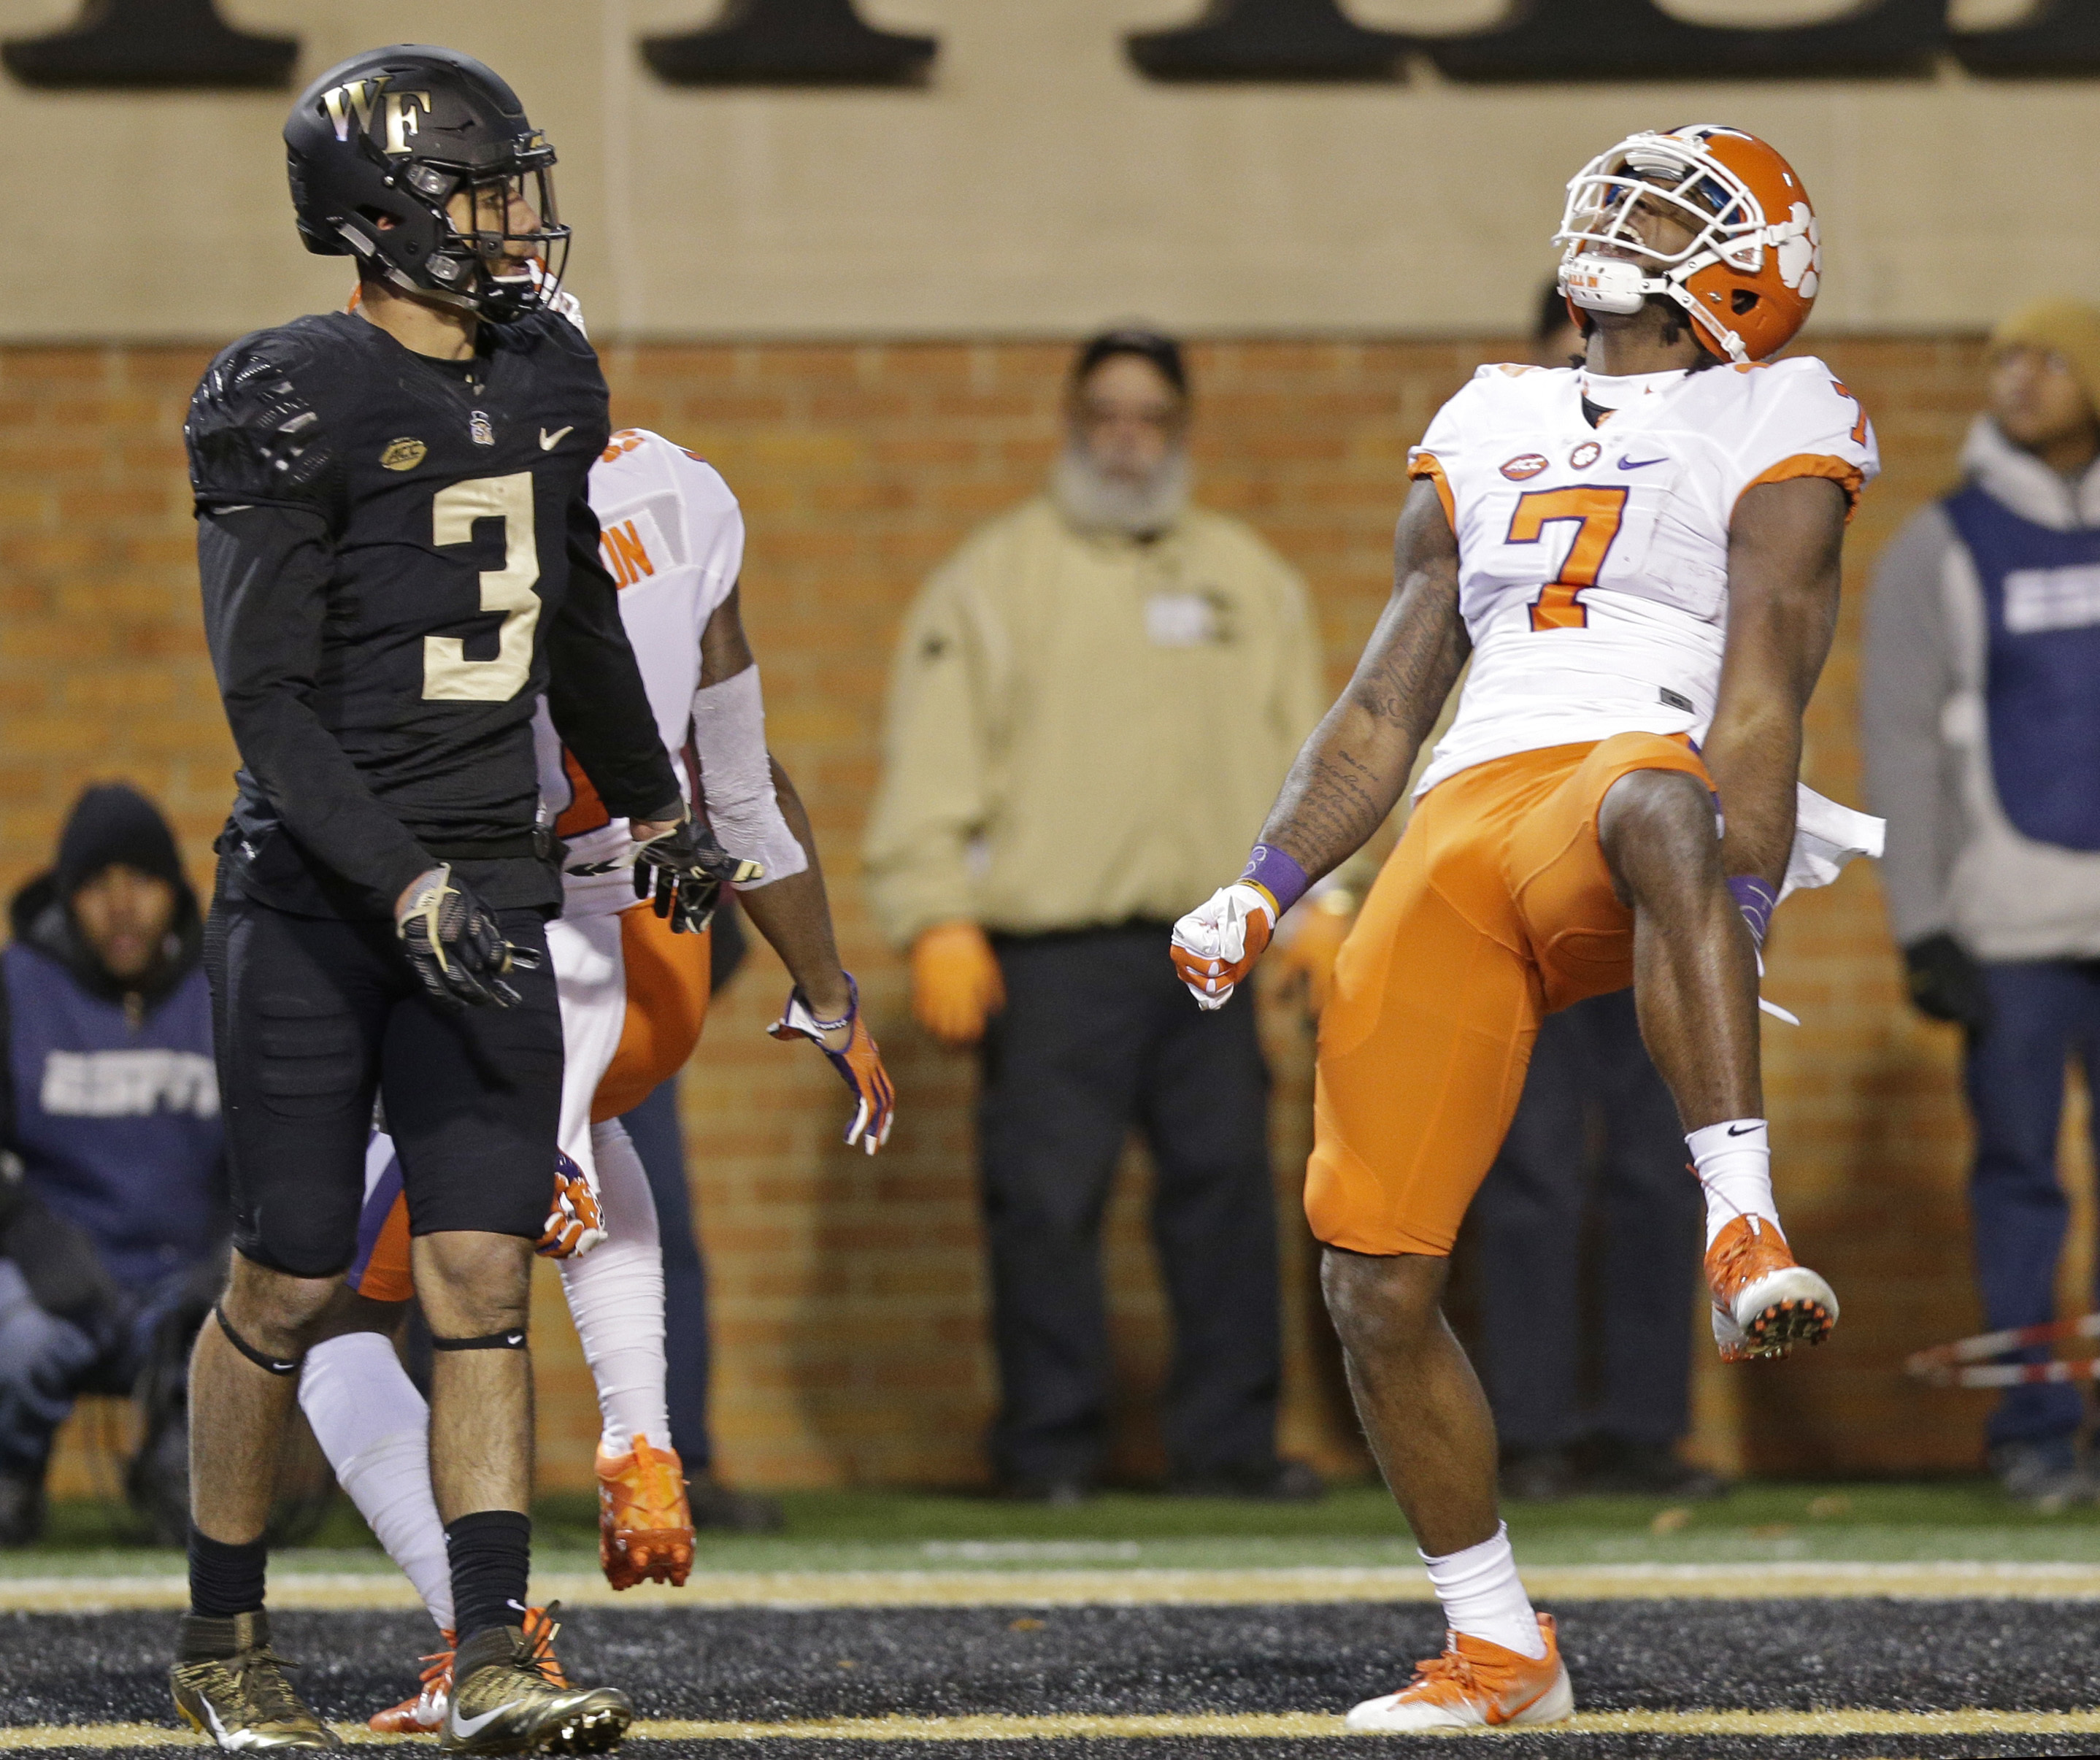 Clemson's Mike Williams (7) celebrates his touchdown as Wake Forest's Jessie Bates III (3) watches during the first half of an NCAA college football game in Winston-Salem, N.C., Saturday, Nov. 19, 2016. (AP Photo/Chuck Burton)